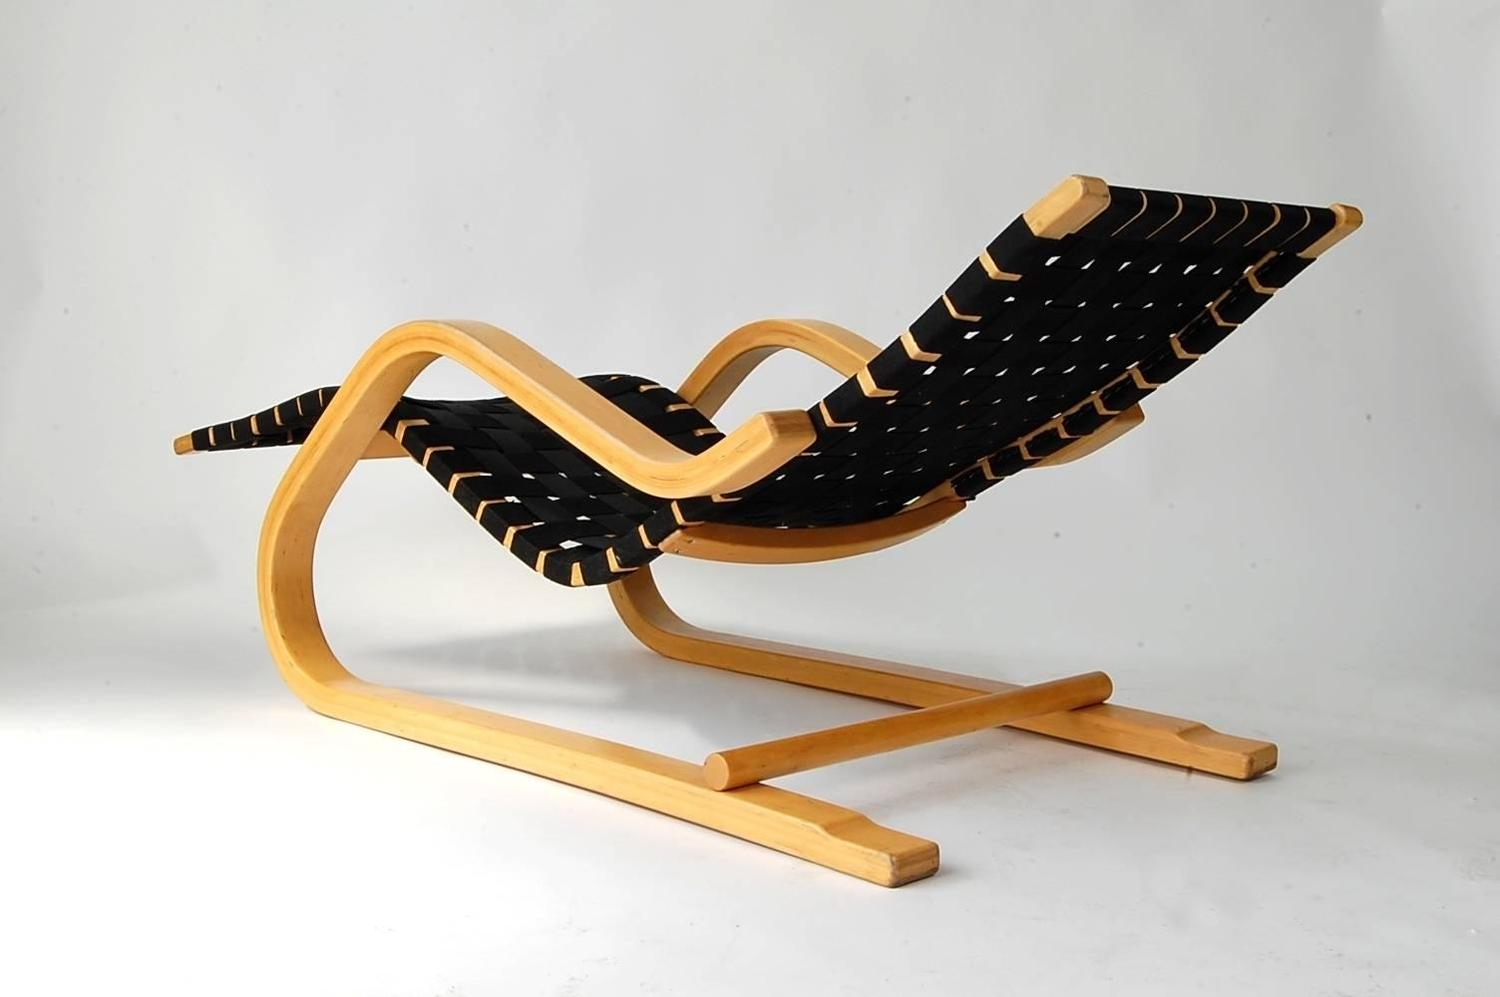 alvar aalto model 43 chaise lounge for sale at 1stdibs